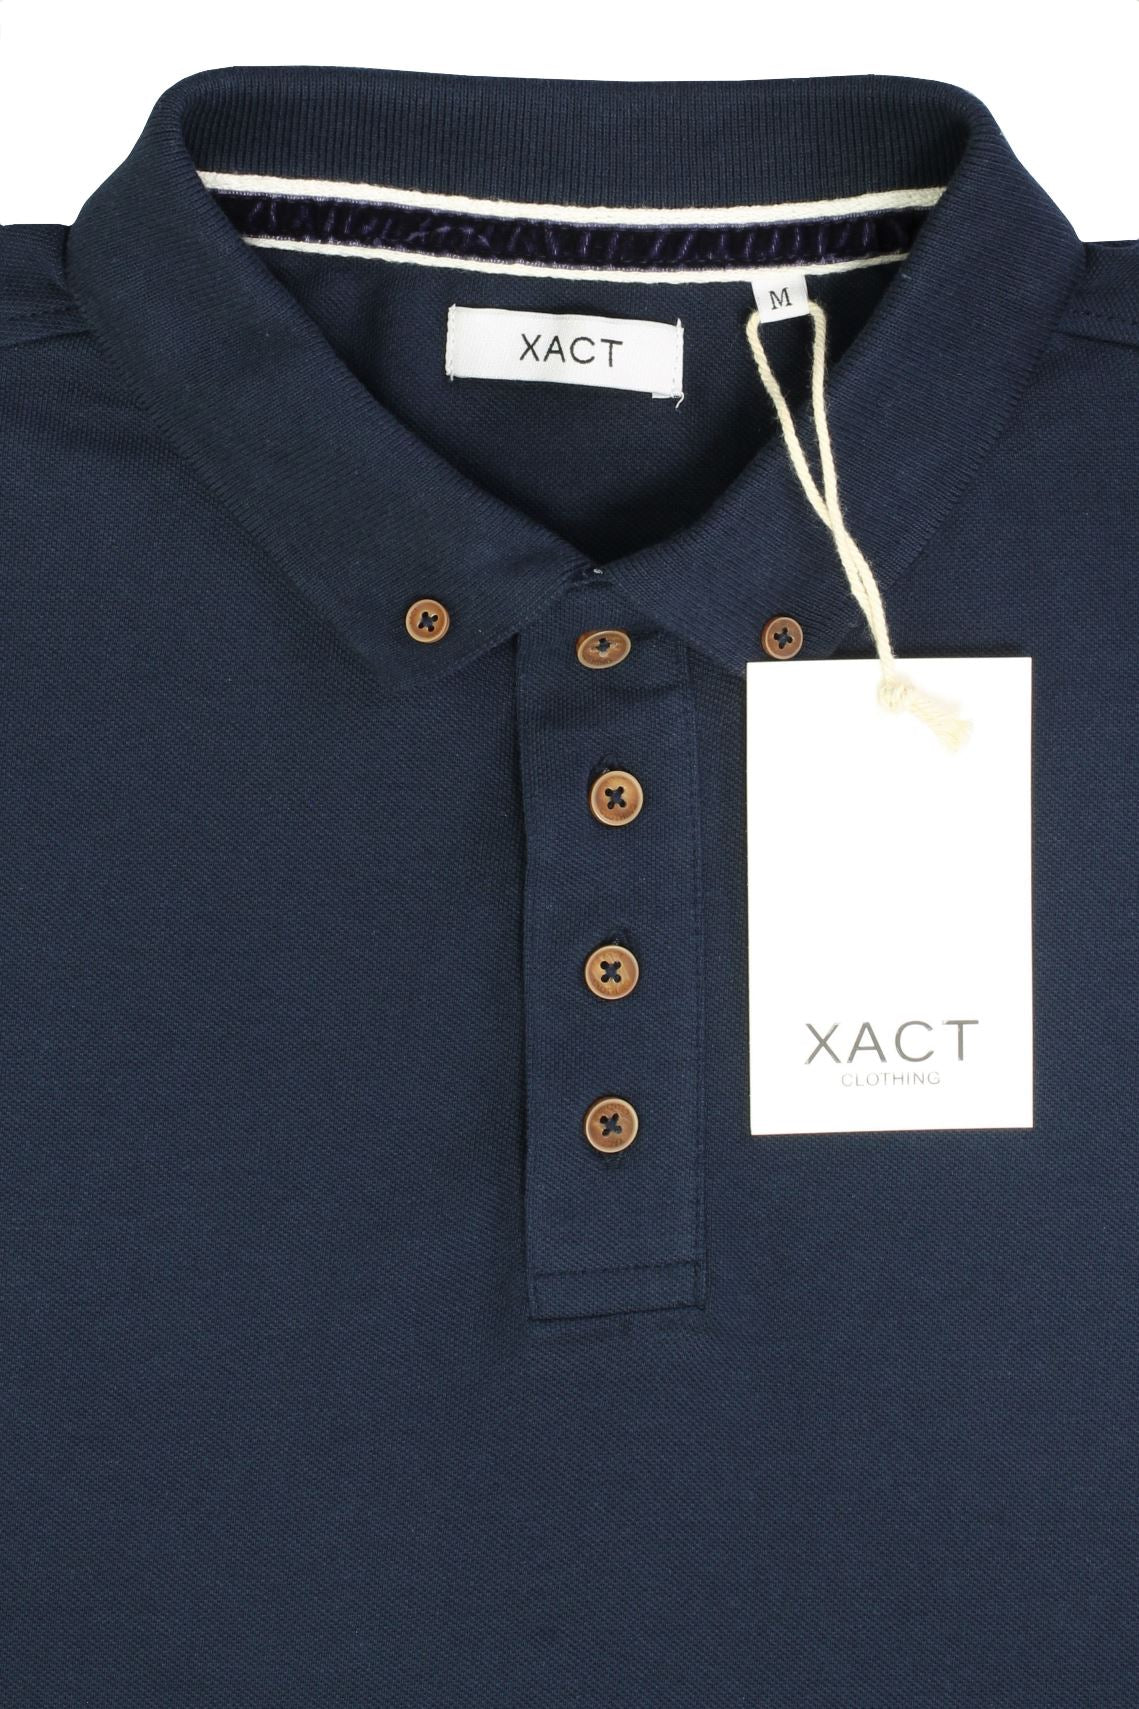 Mens Polo T-Shirt by Xact Pique Long Sleeved_04_XP1003_Ocean Blue